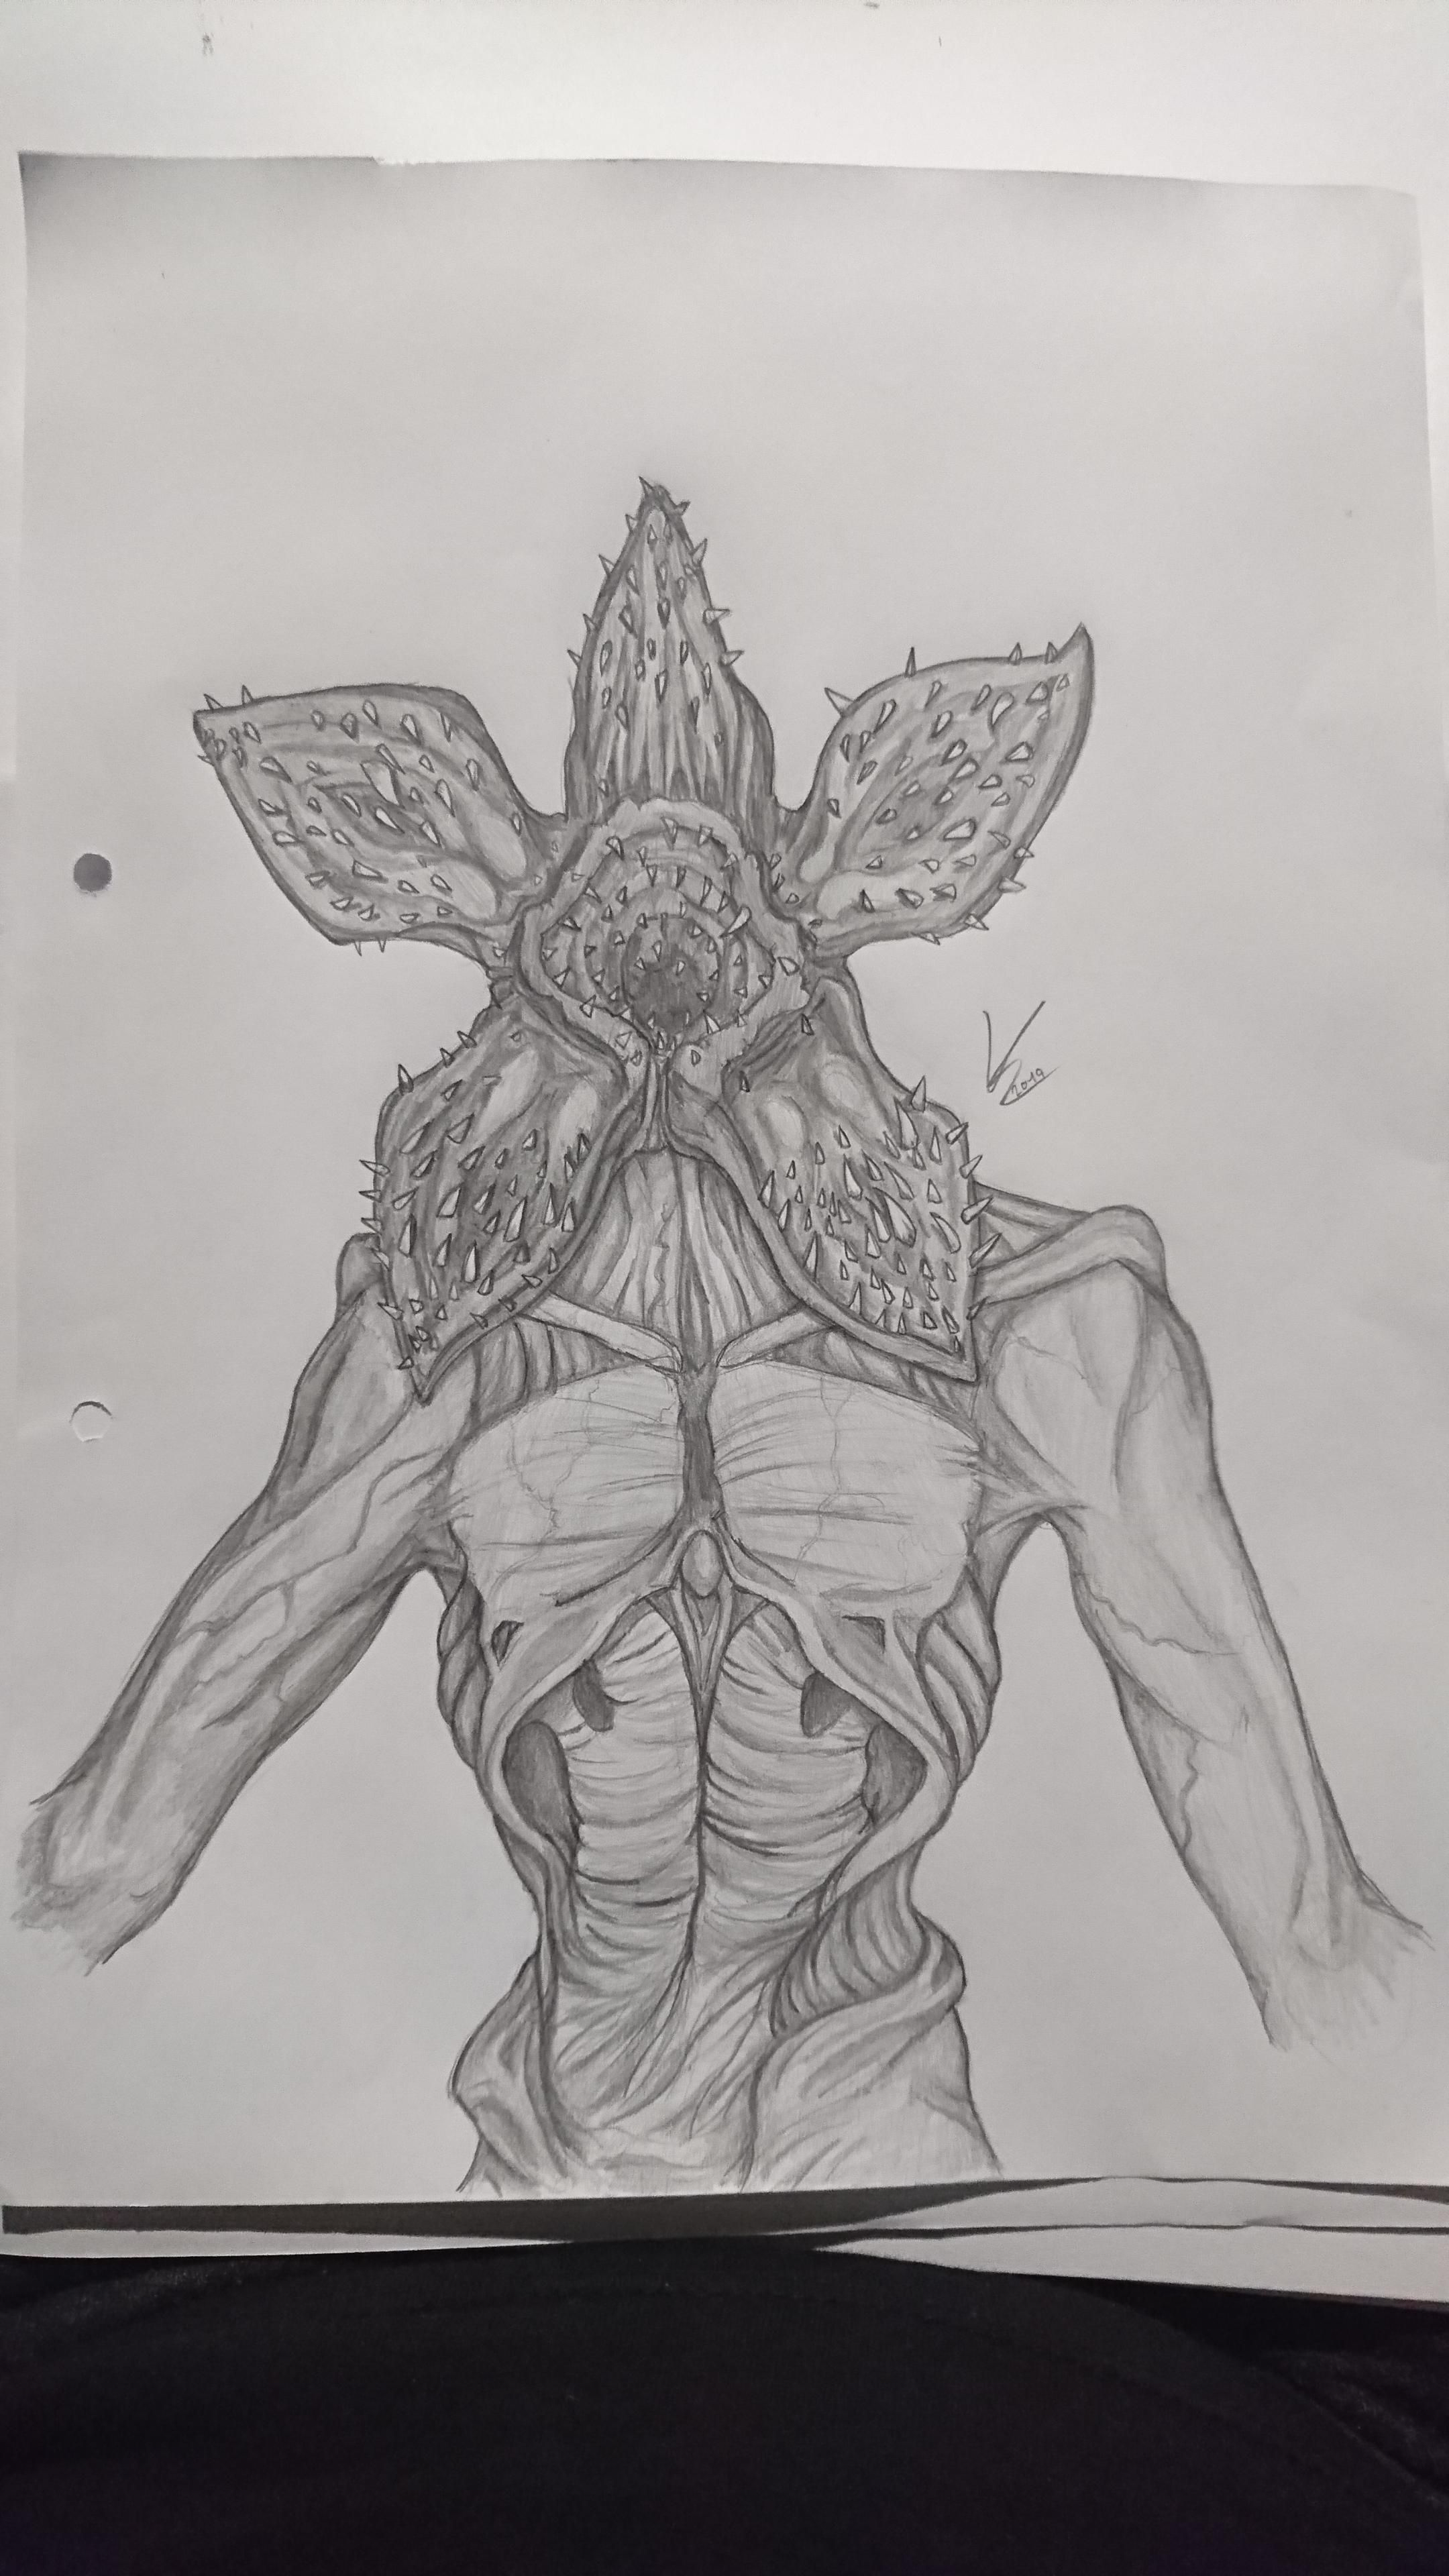 I Ve Been Told To Post It Here Aswell So Here S My Demogorgon Drawing I Hope You Like It Stranger Things Art Stranger Things Monster Creepy Sketches